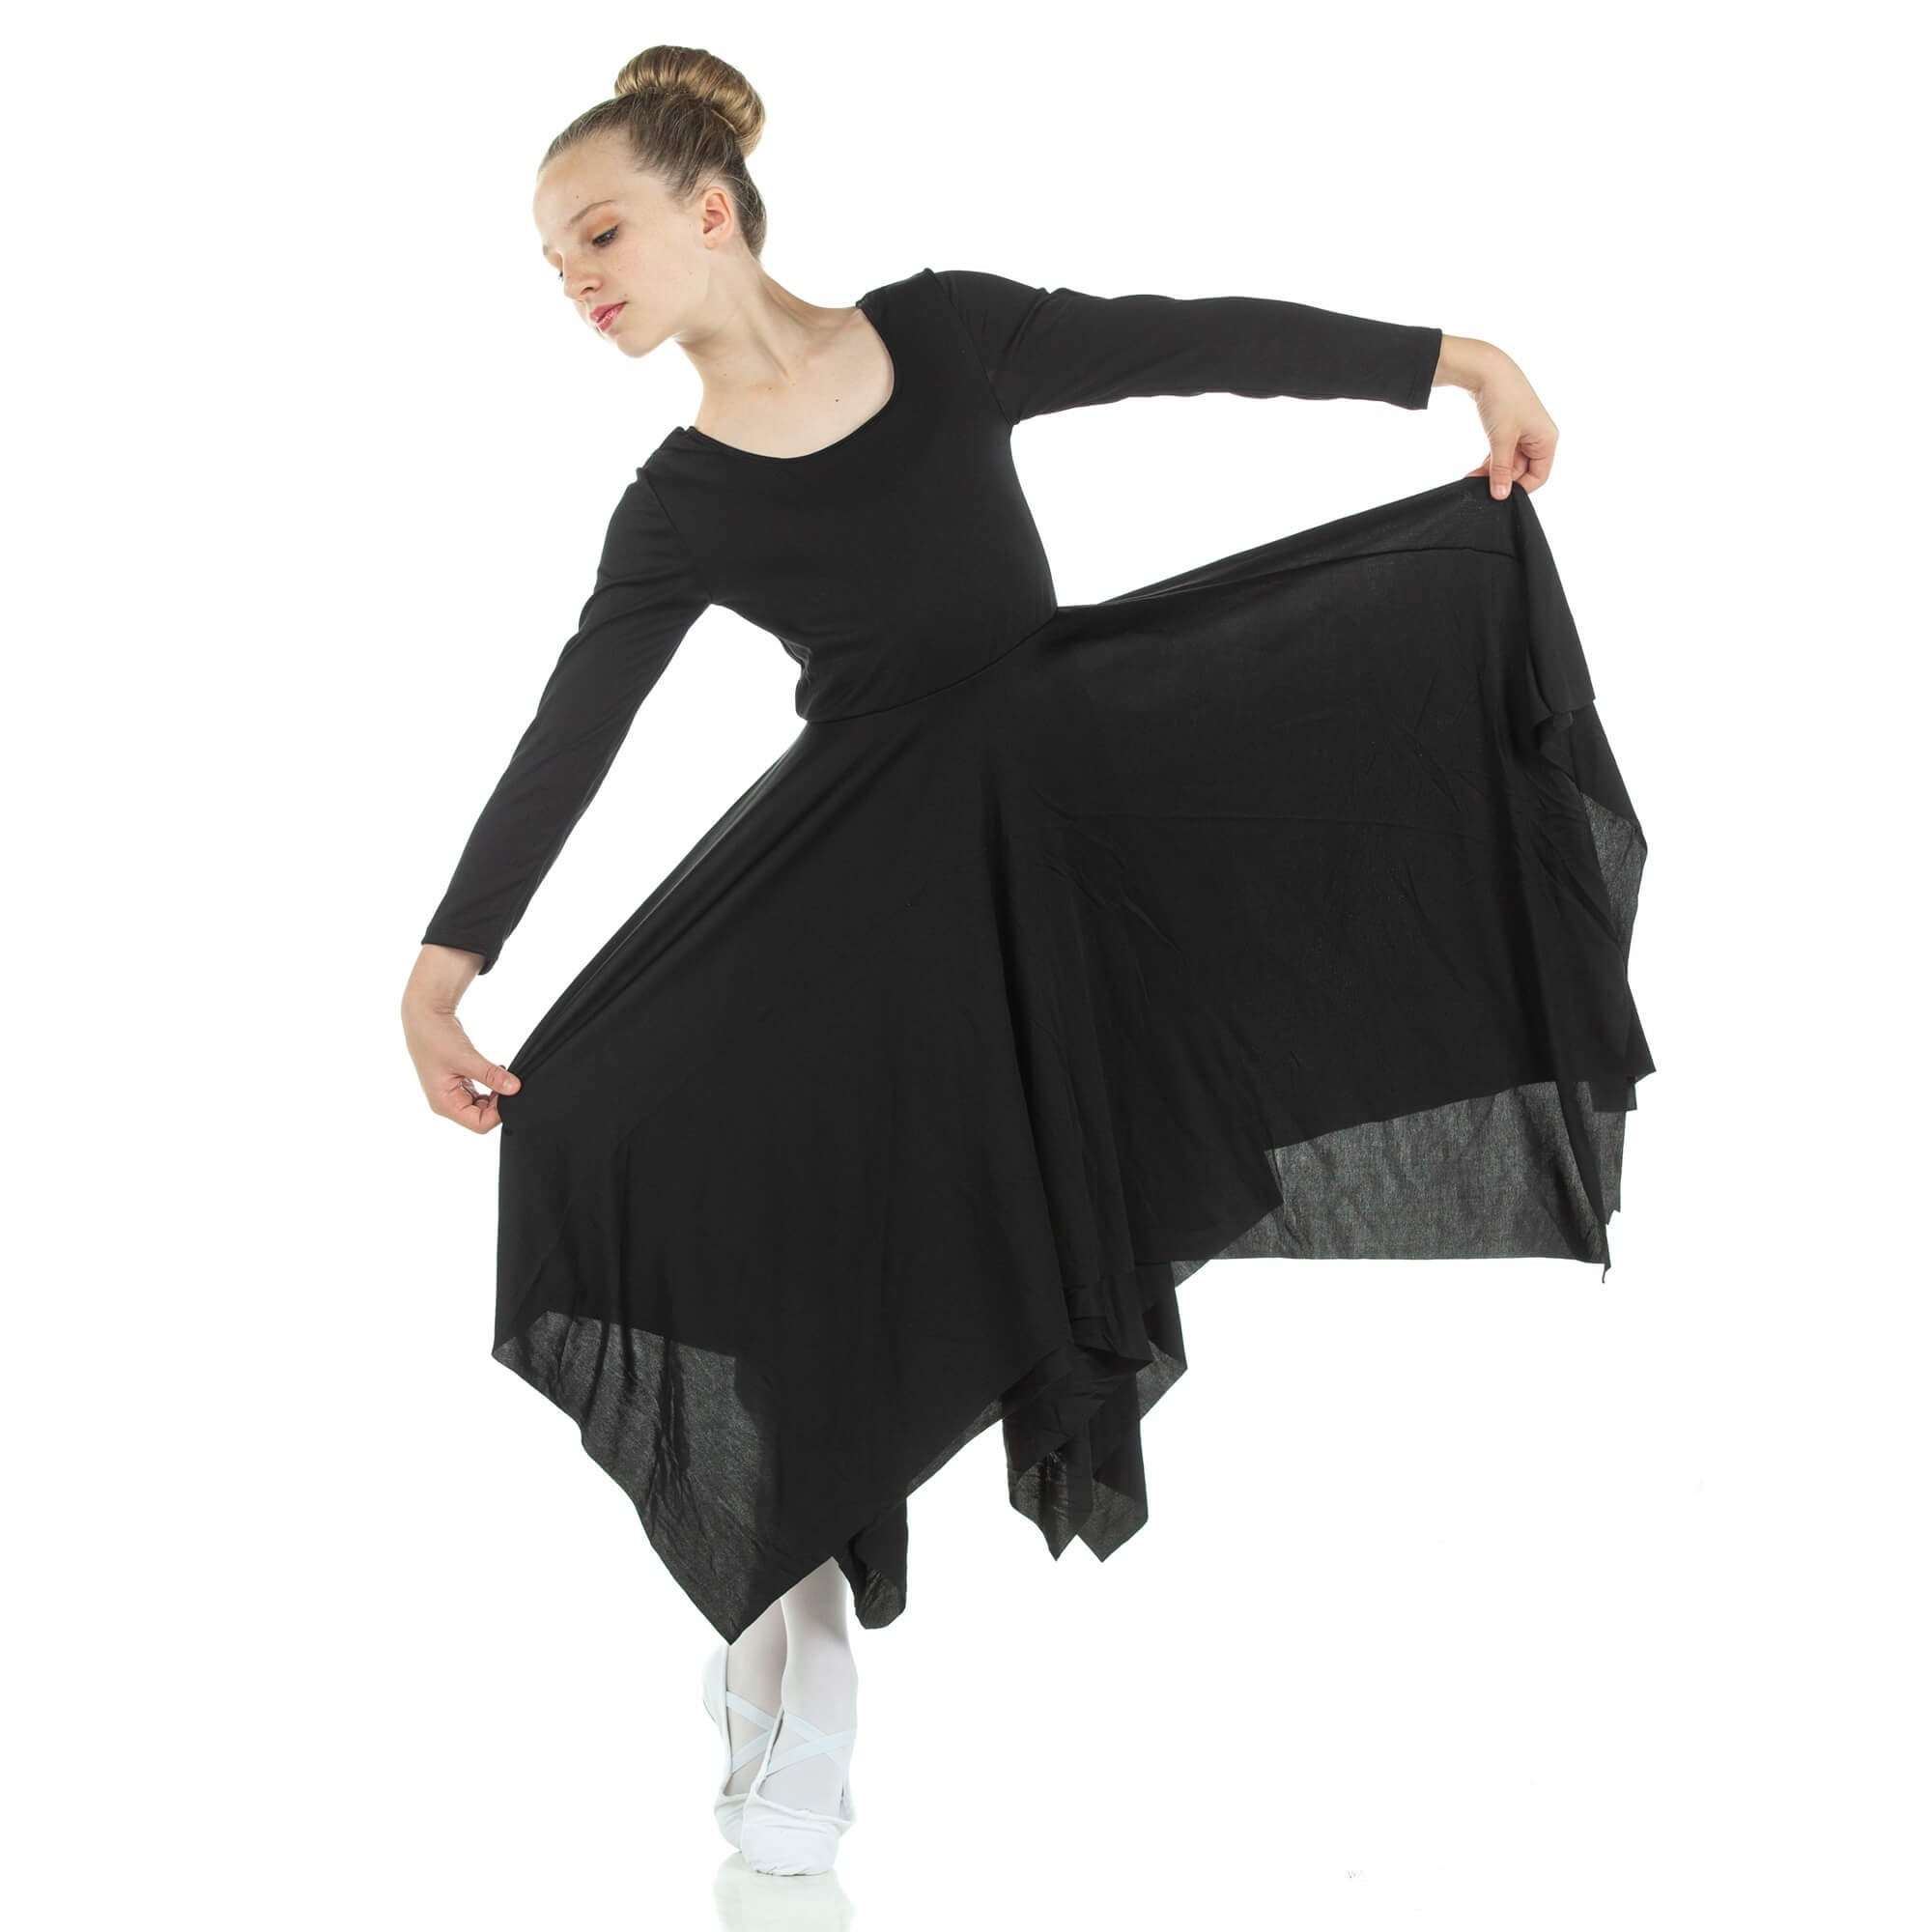 Danzcue Celebration Of Spirit Long Sleeve Child Dance Dress